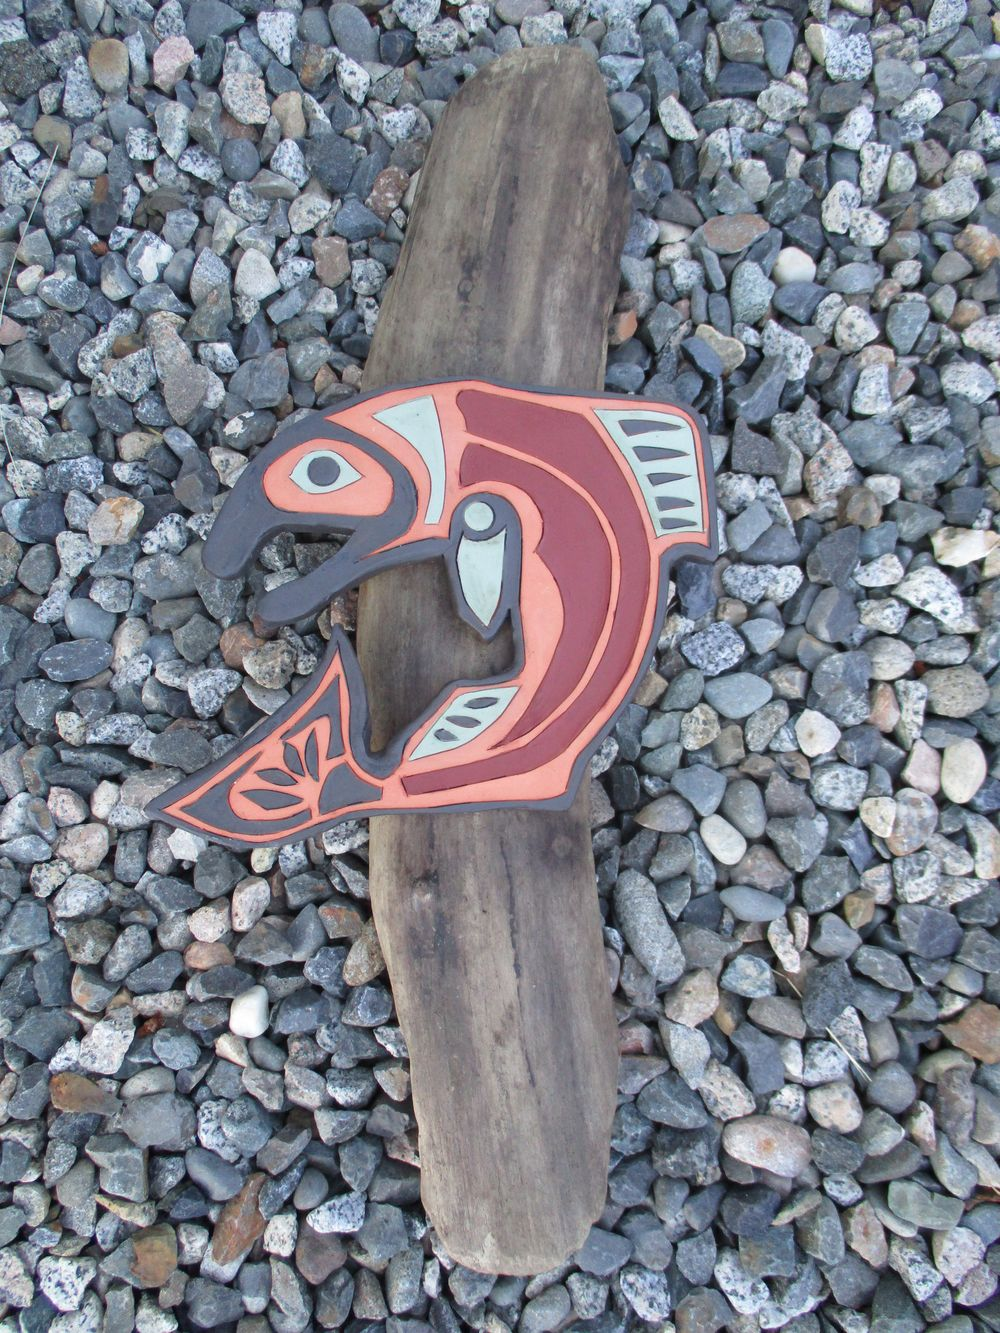 "Fish Native Art on a piece of driftwood (Driftwood is cleaned and mat transparent painted). Fish size: length 17.5cm (6.8'), depth 1.5cm (0.75""), width 20.5cm (8.1""). Driftwood size: length 51cm (20""), width 10cm ( 4""), mountable on the wall. Price $ 69.0"